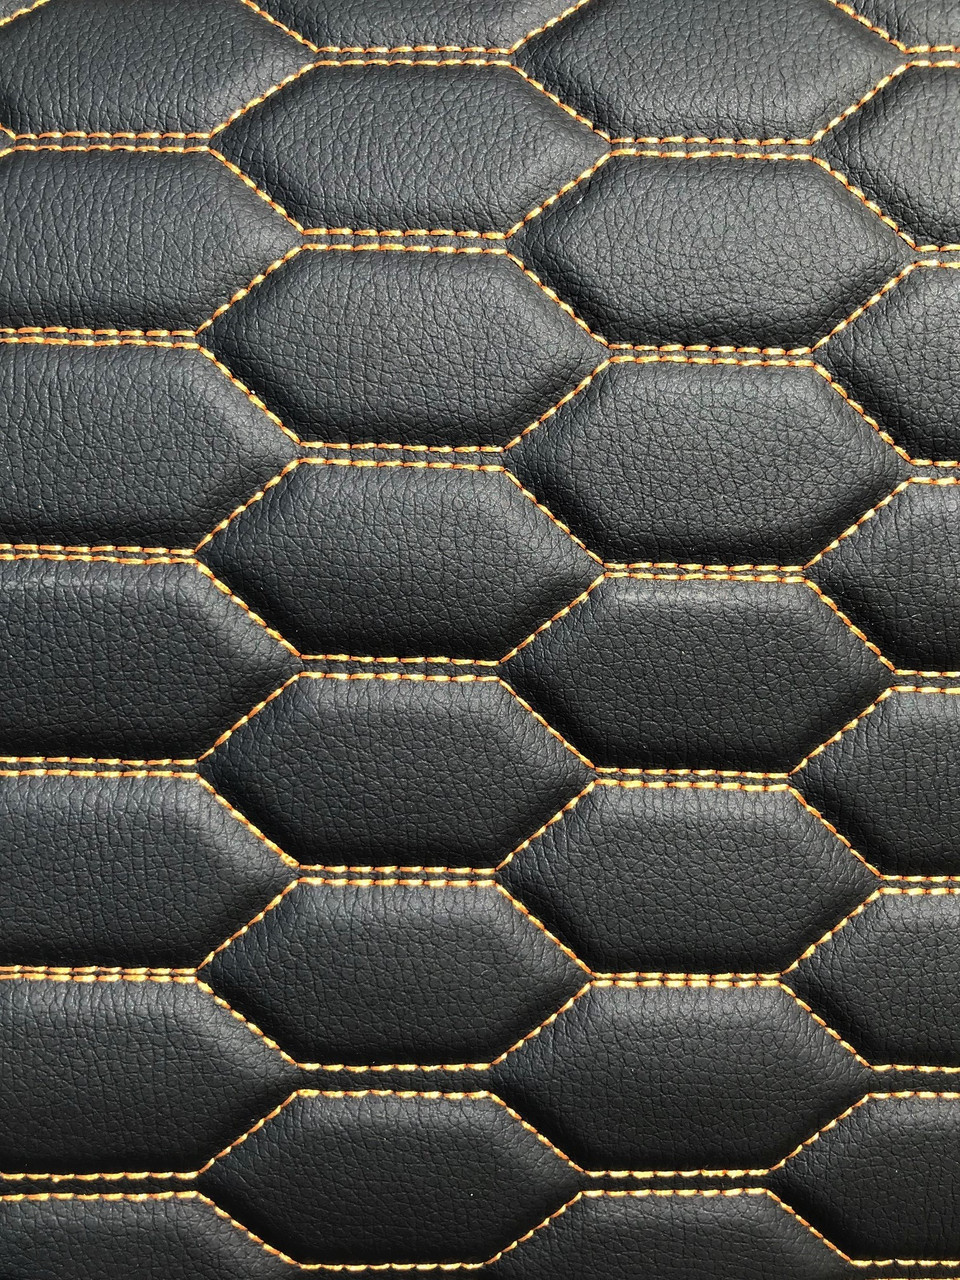 Quilted automotive grade black vinyl with gold-bronze stitching